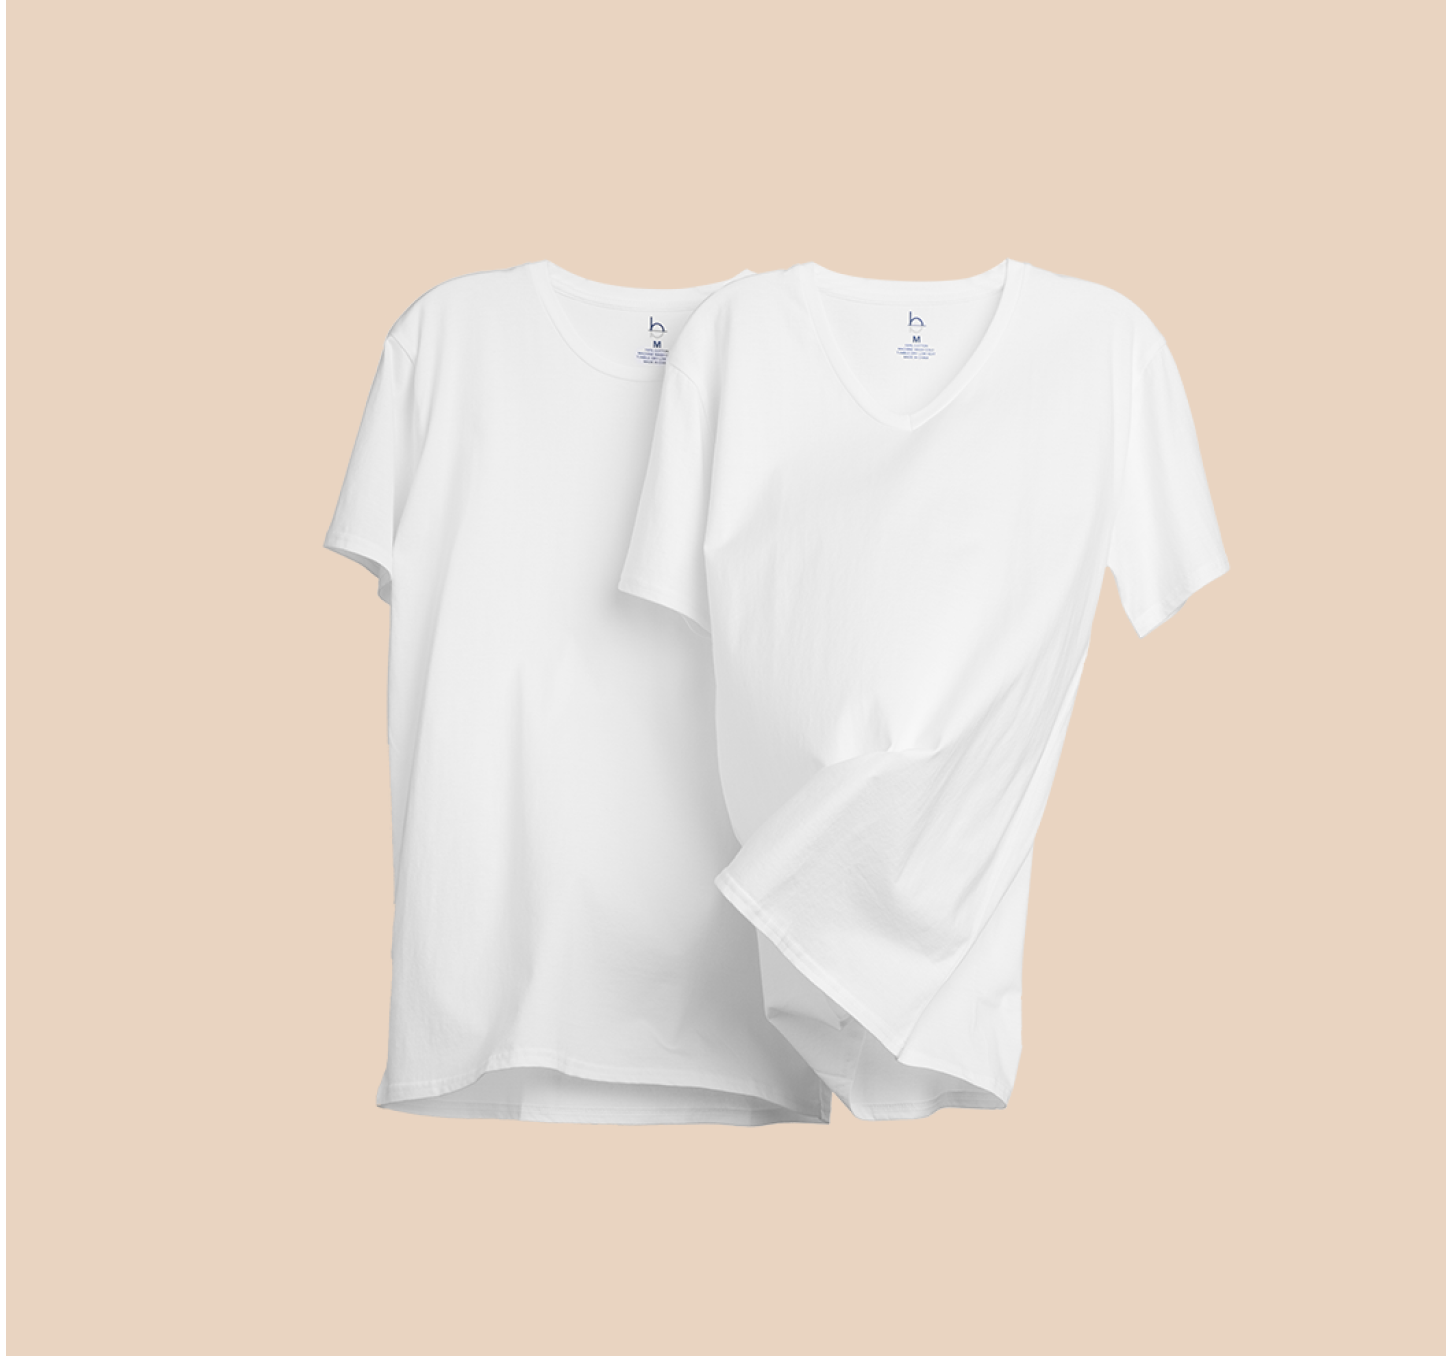 Copy of Beneath Undershirt Plan